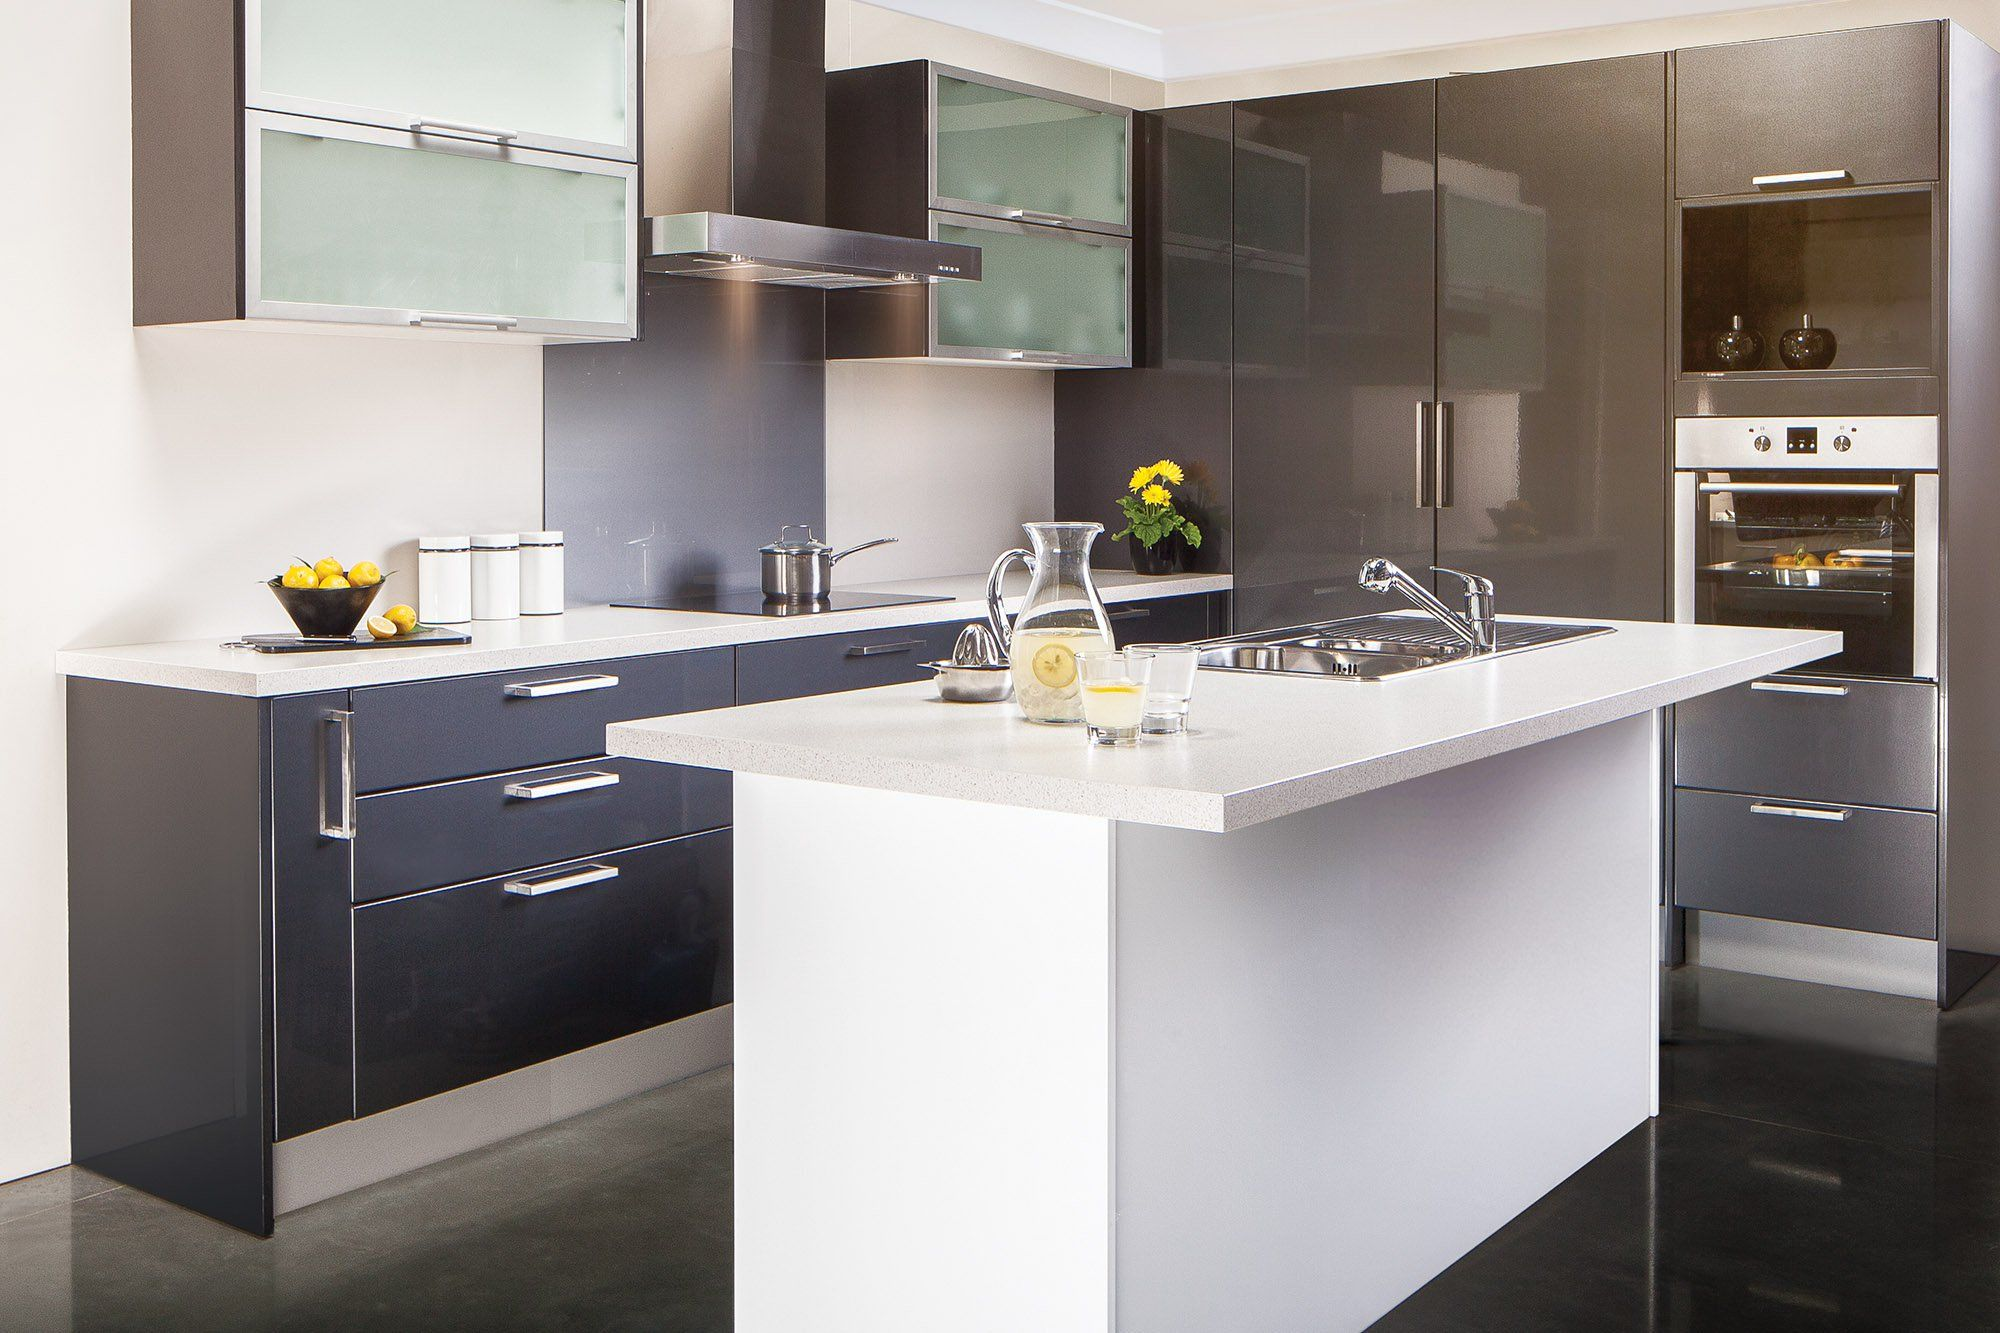 kitchen laundry packages modular kitchens benchtops laminate